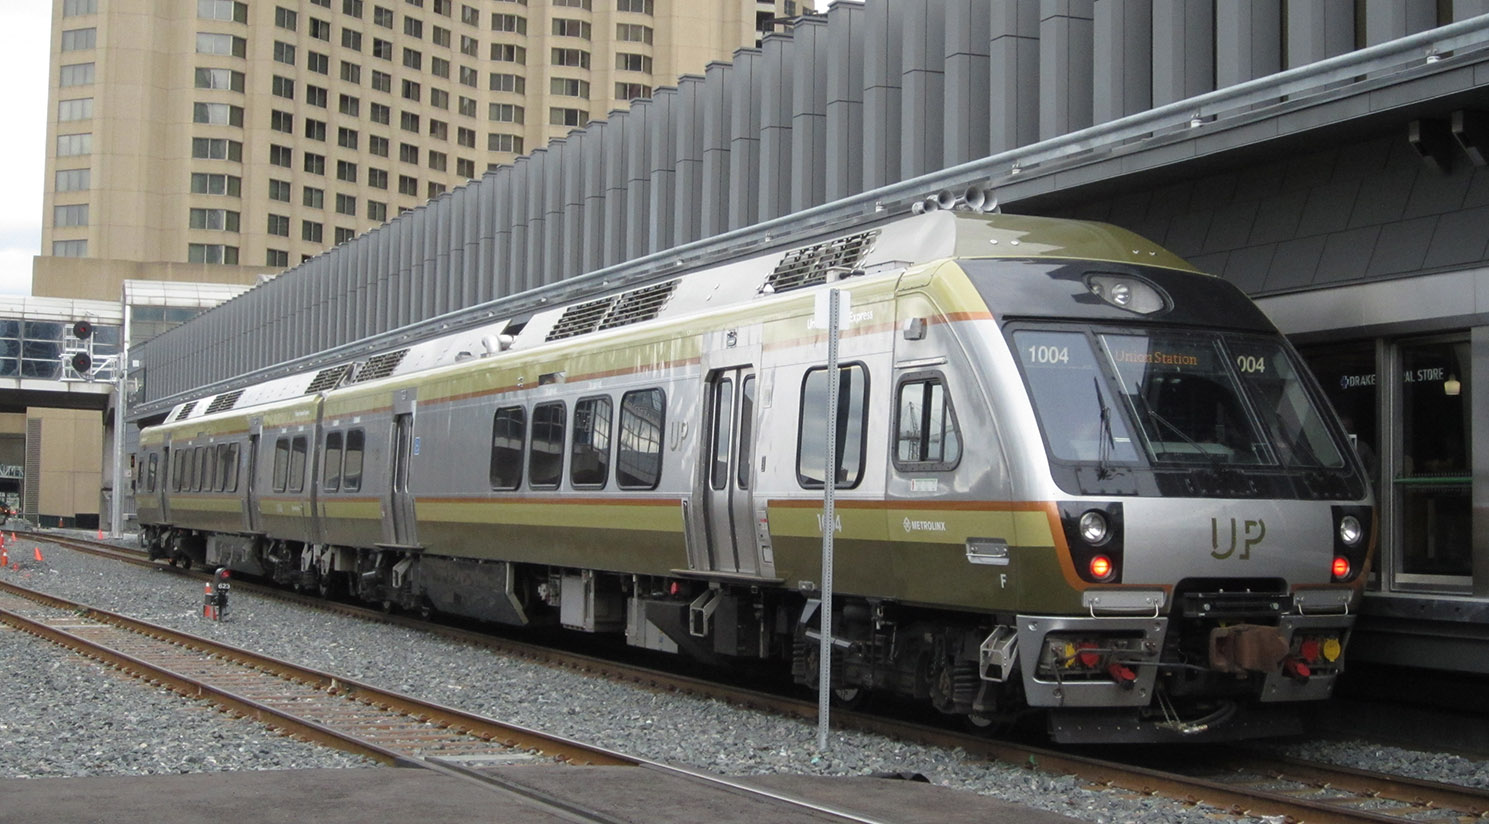 Support for Automotive Railcar Acquisition by Metrolinx